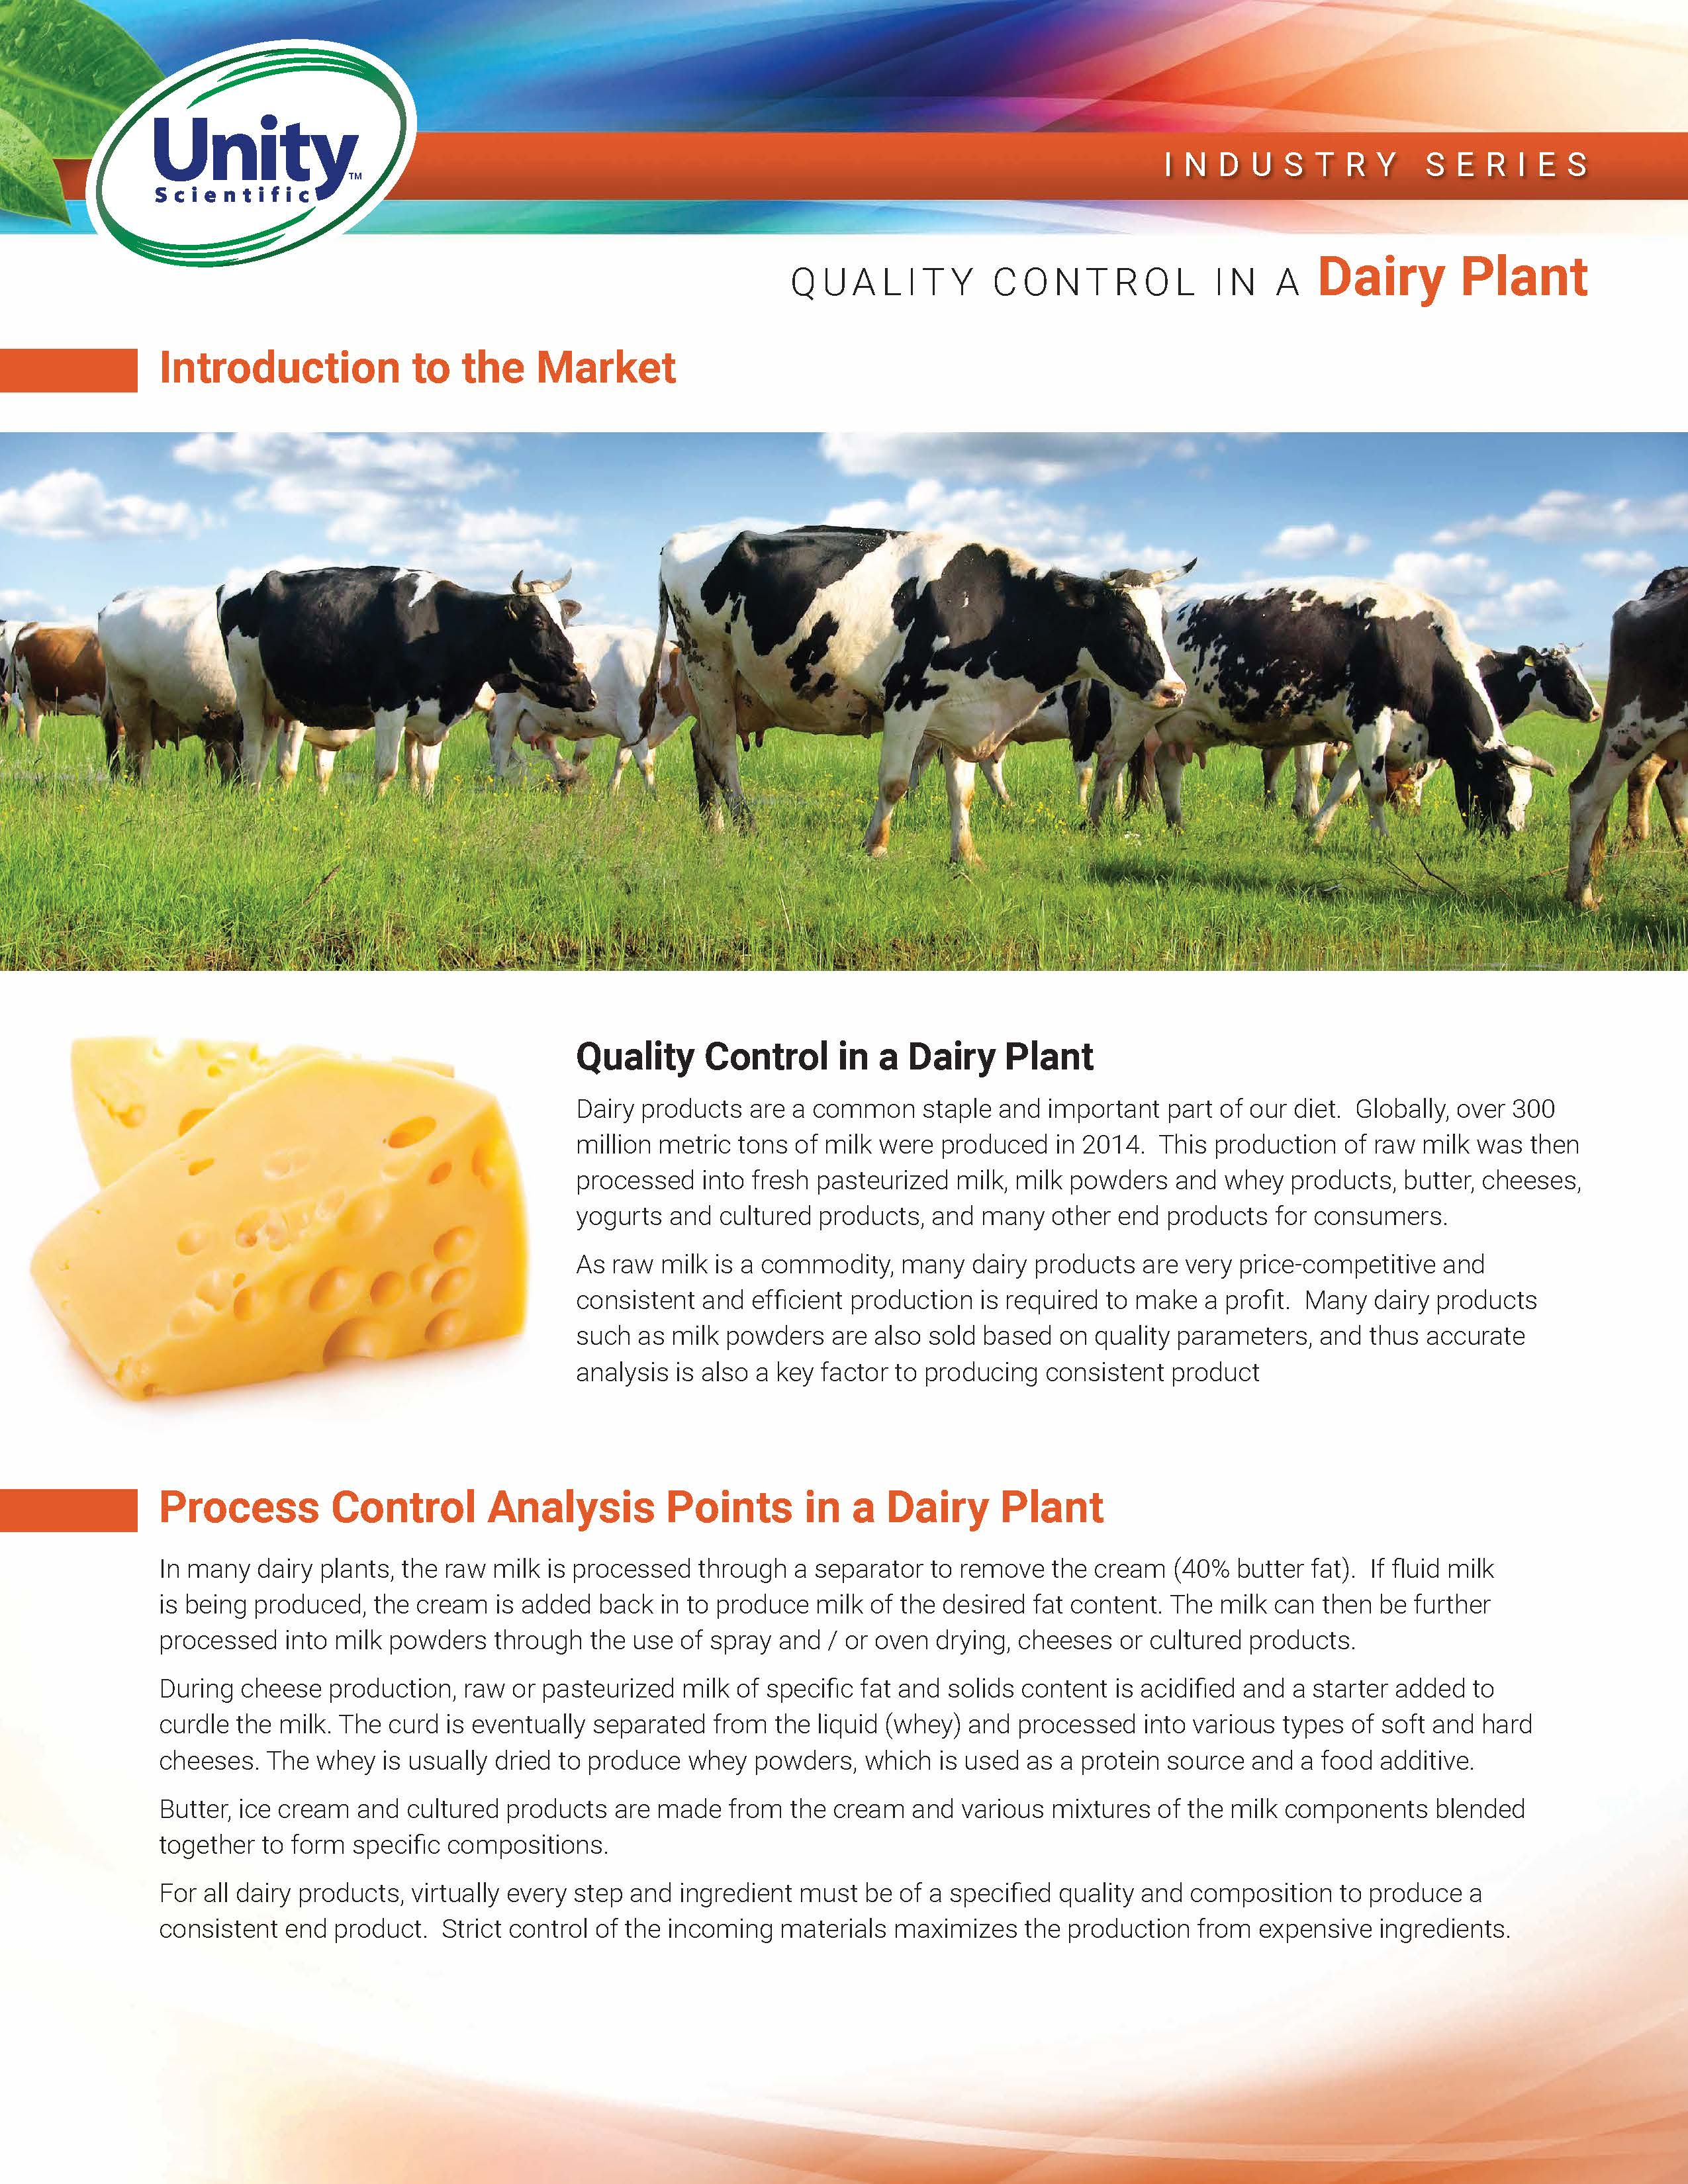 Industry Series - Quality Control In A Dairy Plant